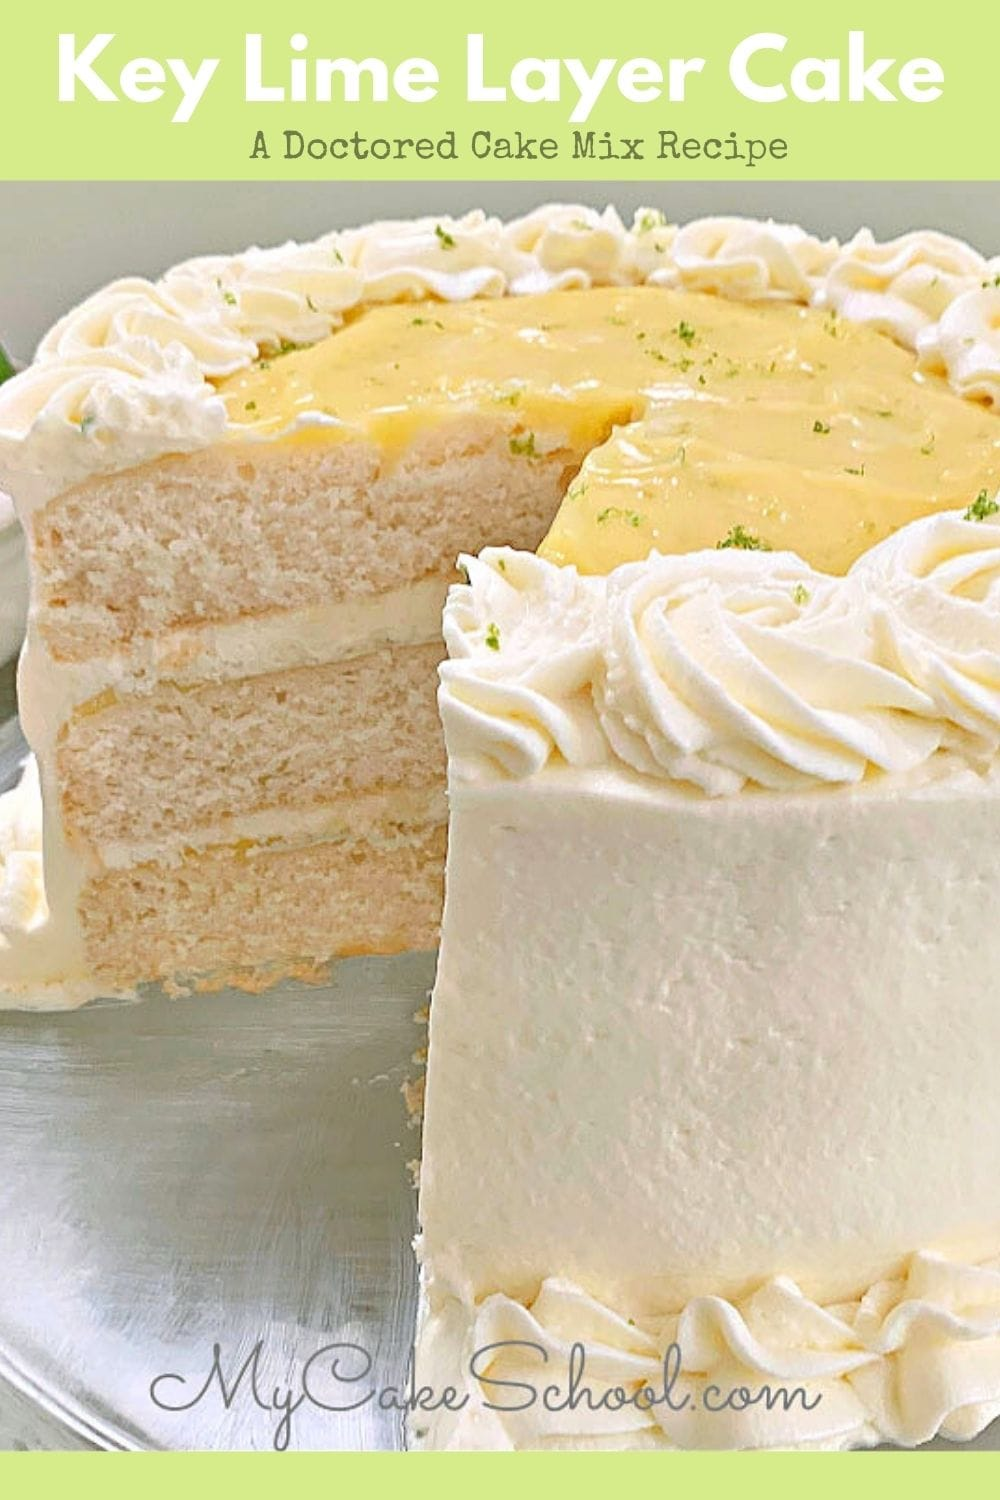 Key Lime Layer Cake- A Doctored Cake Mix Recipe